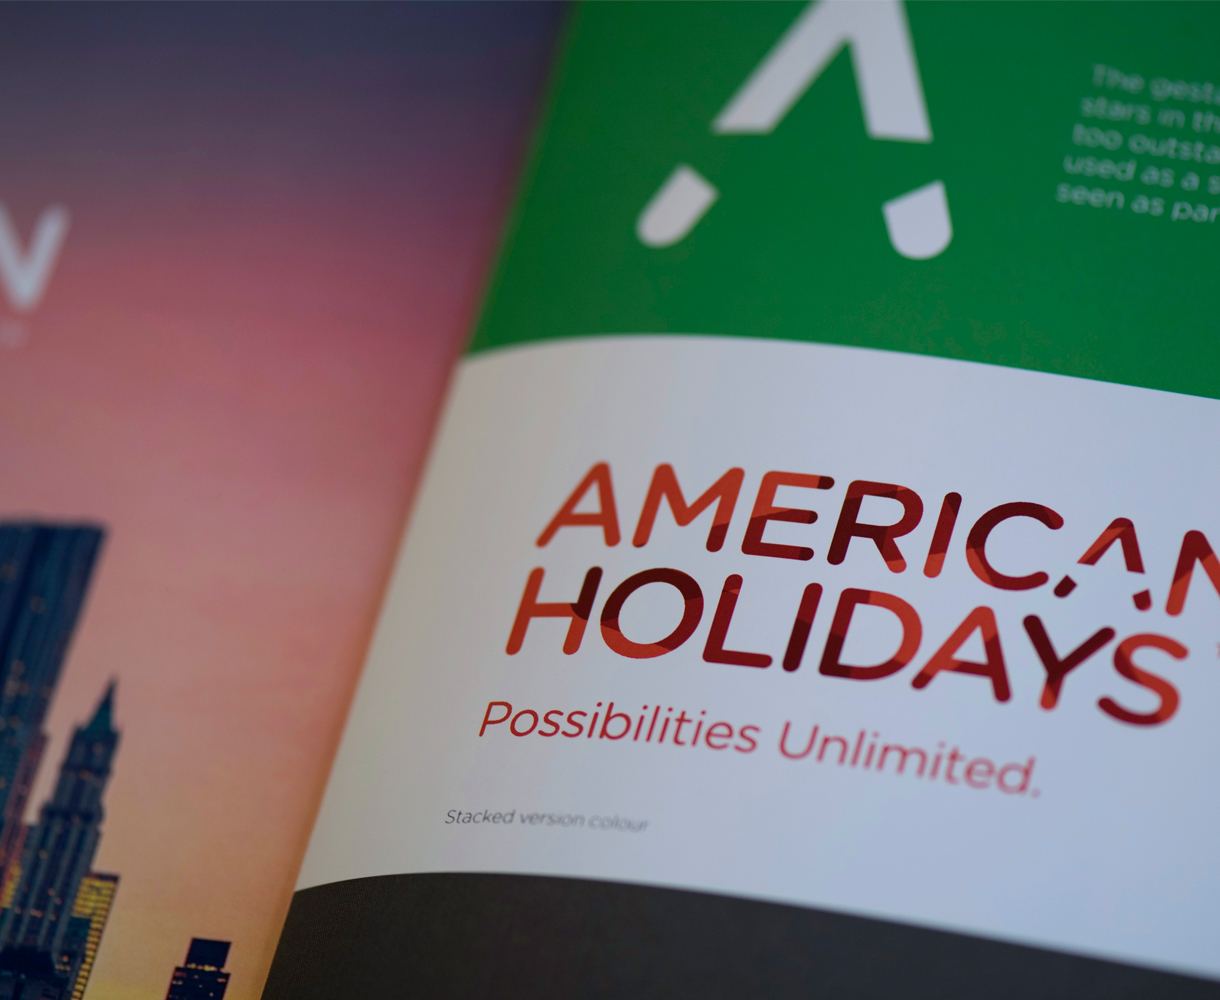 American Holidays Brand Development Brand Guidelines